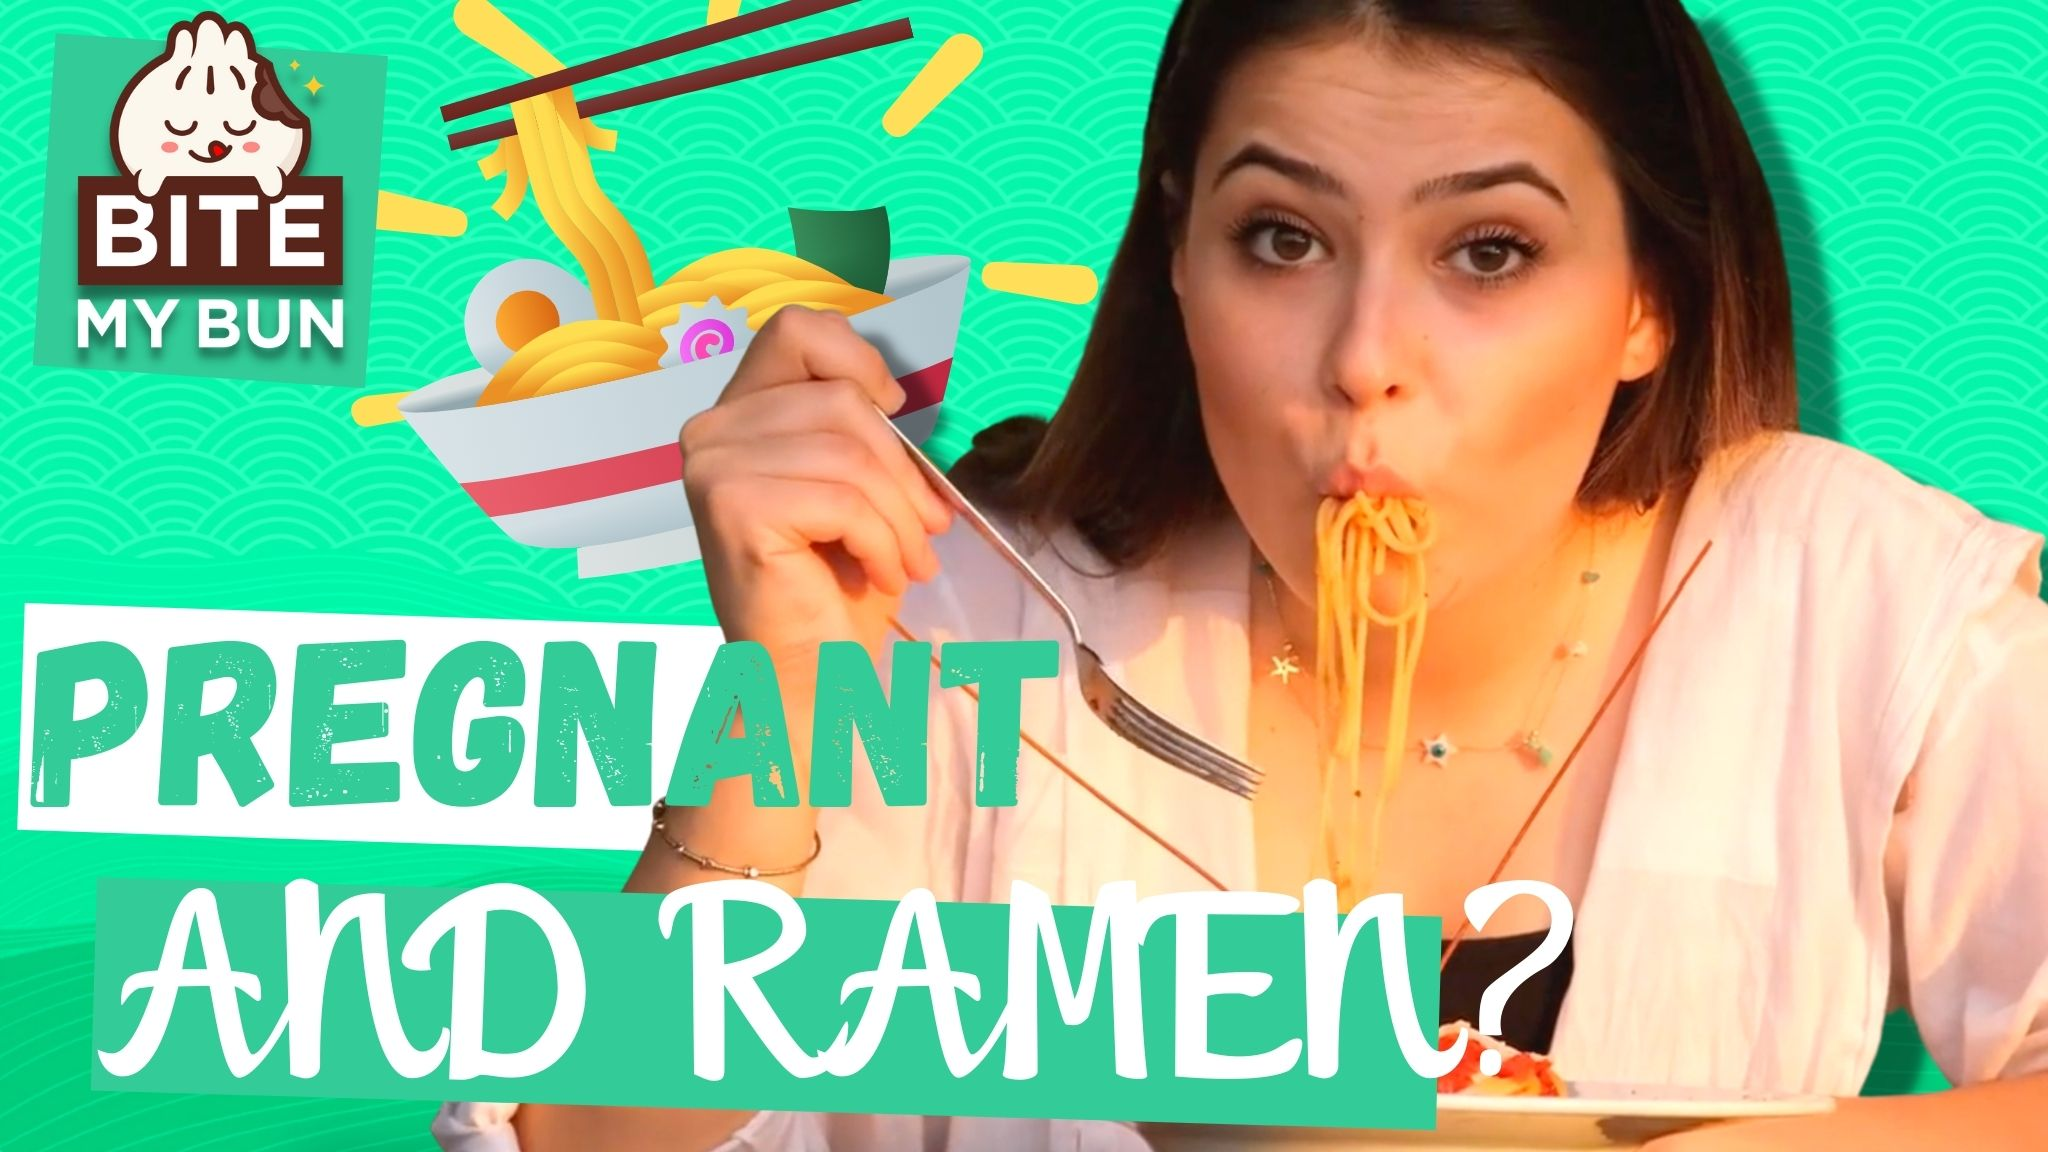 Can i eat ramen noodles while pregnant